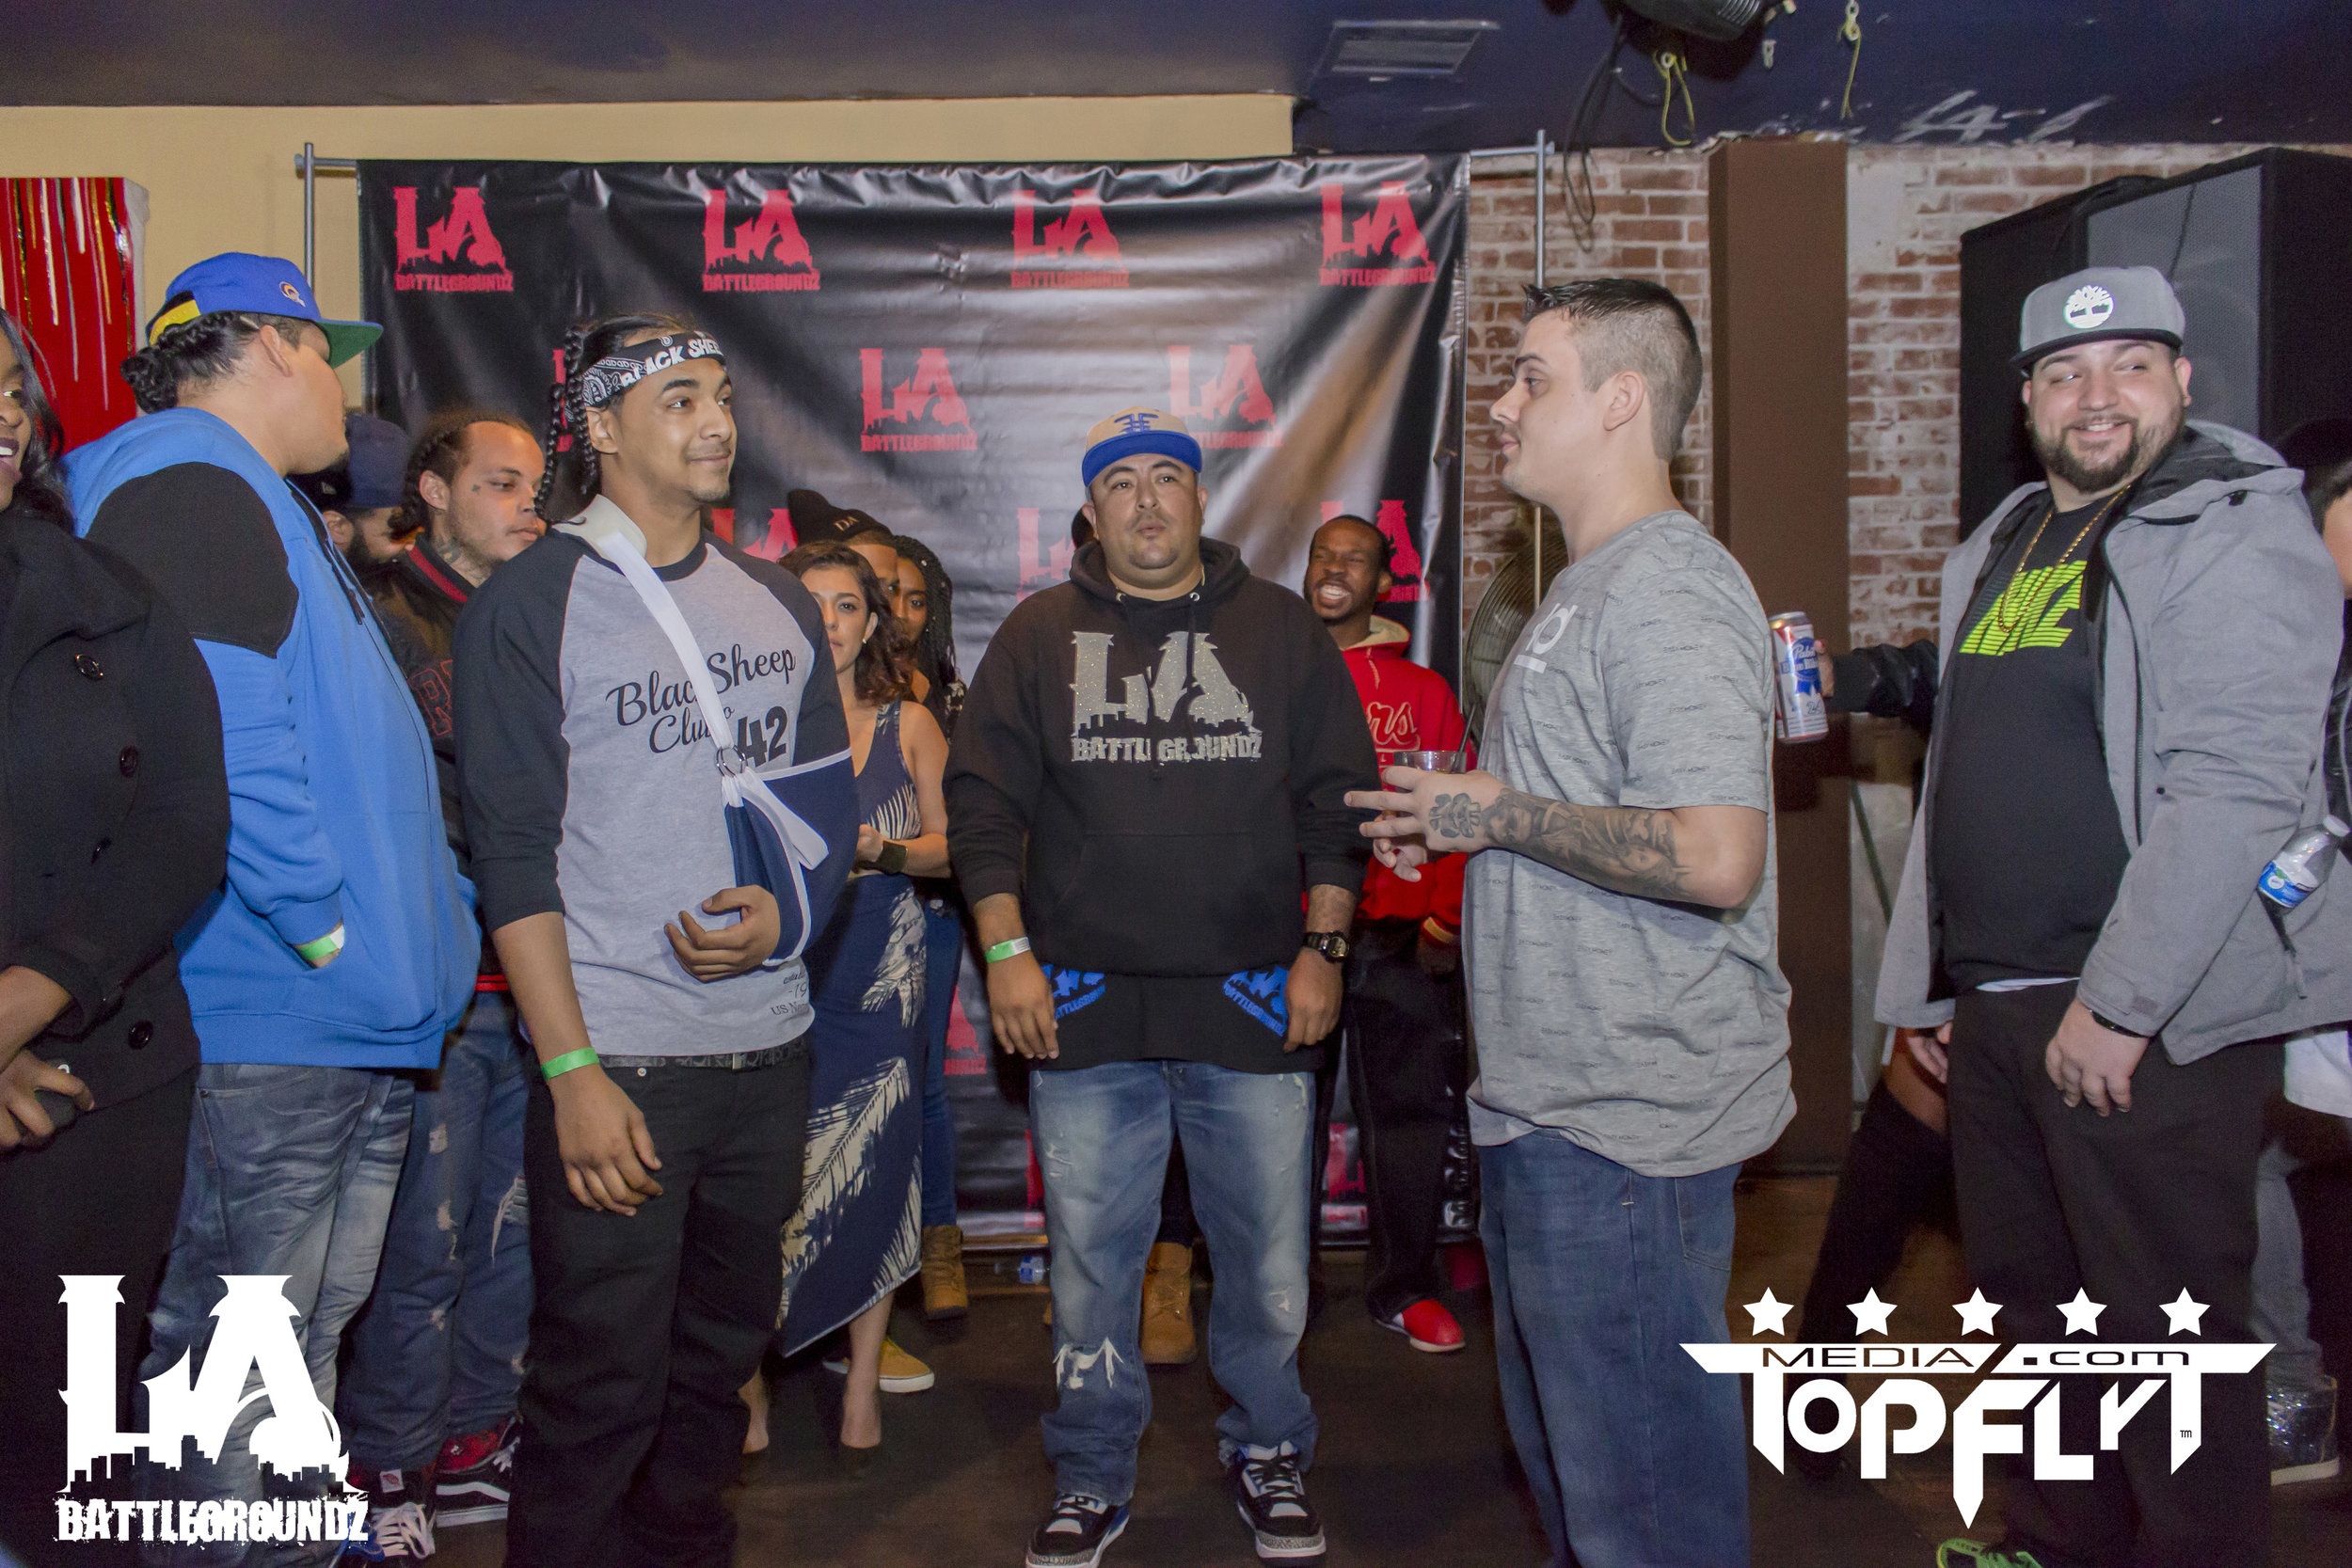 LA Battlegroundz - Decembarfest - The Christening_66.jpg